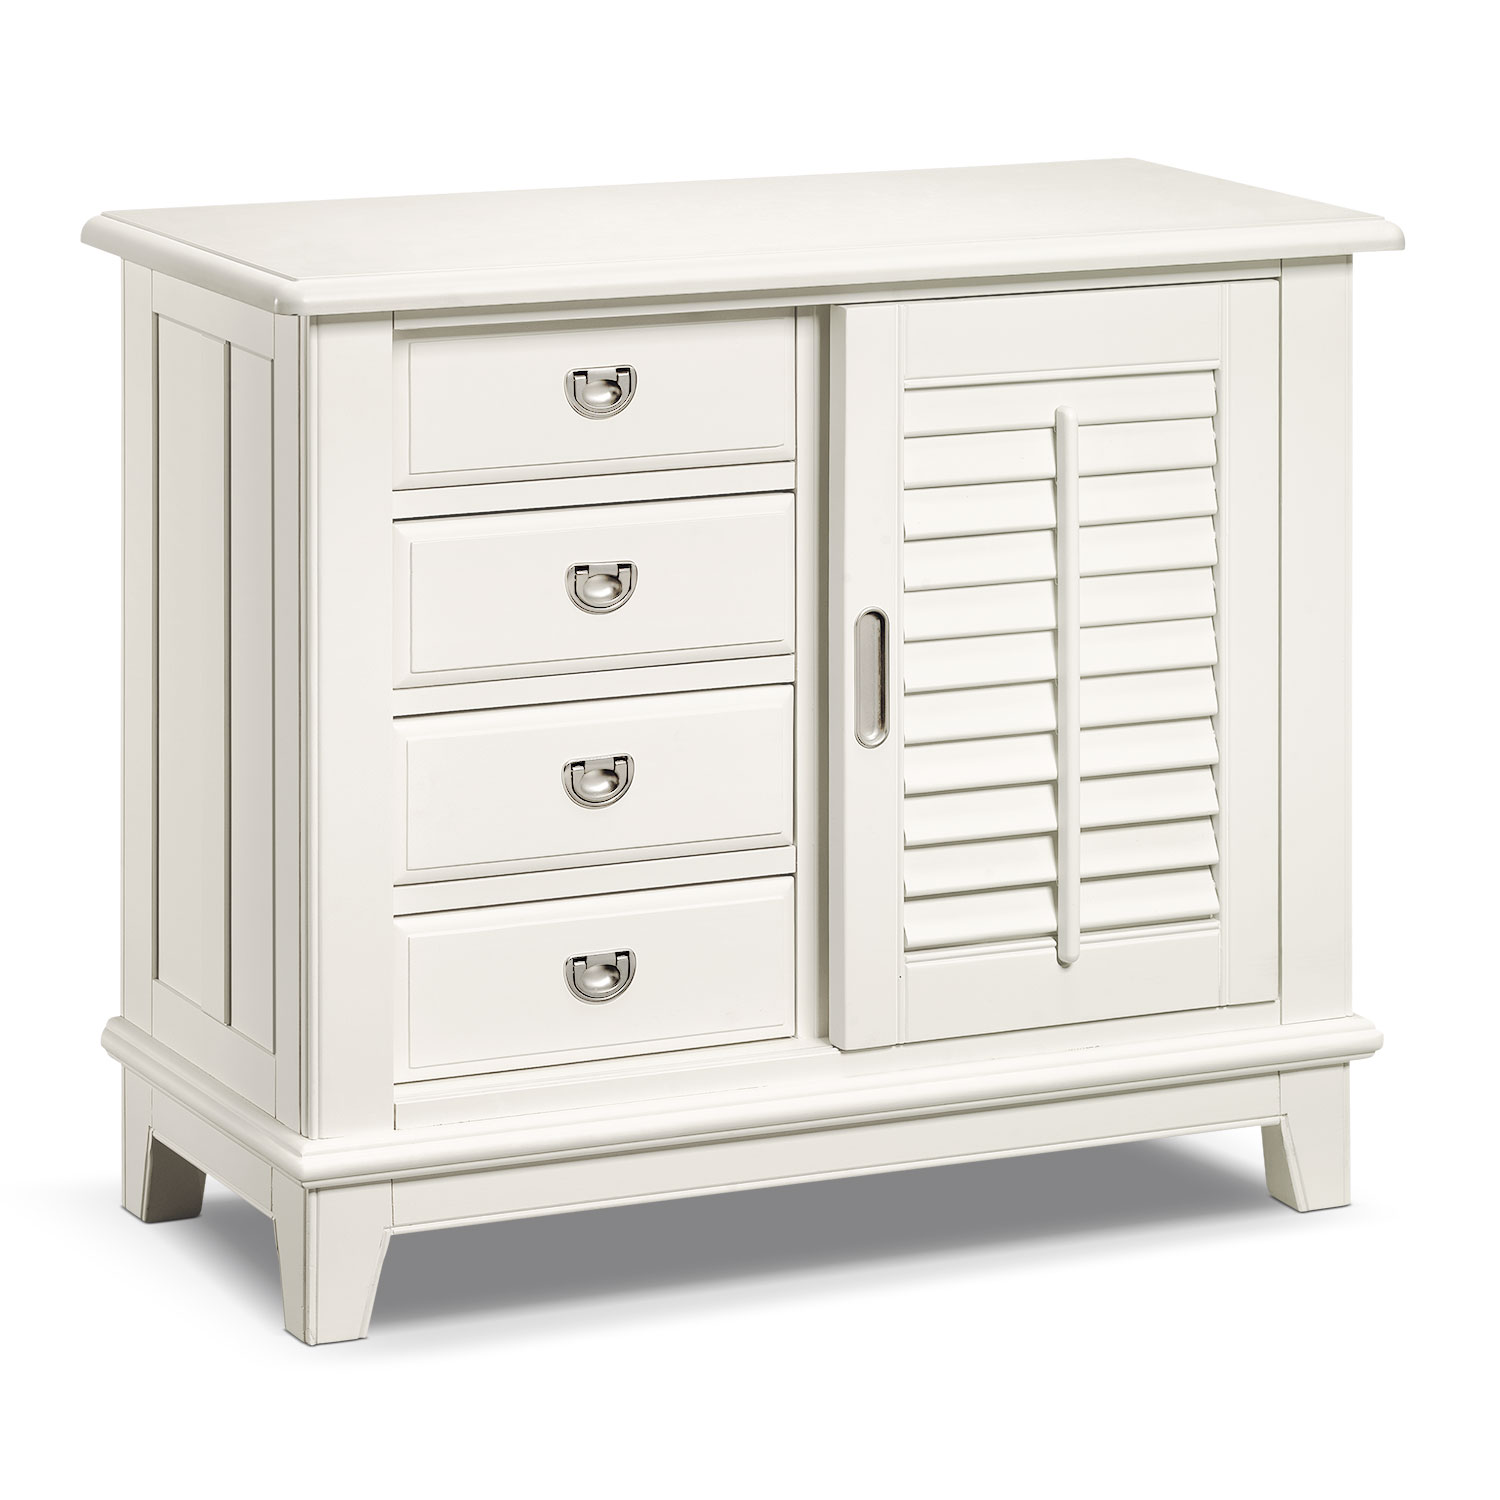 Plantation Cove Sliding Door Chest - White